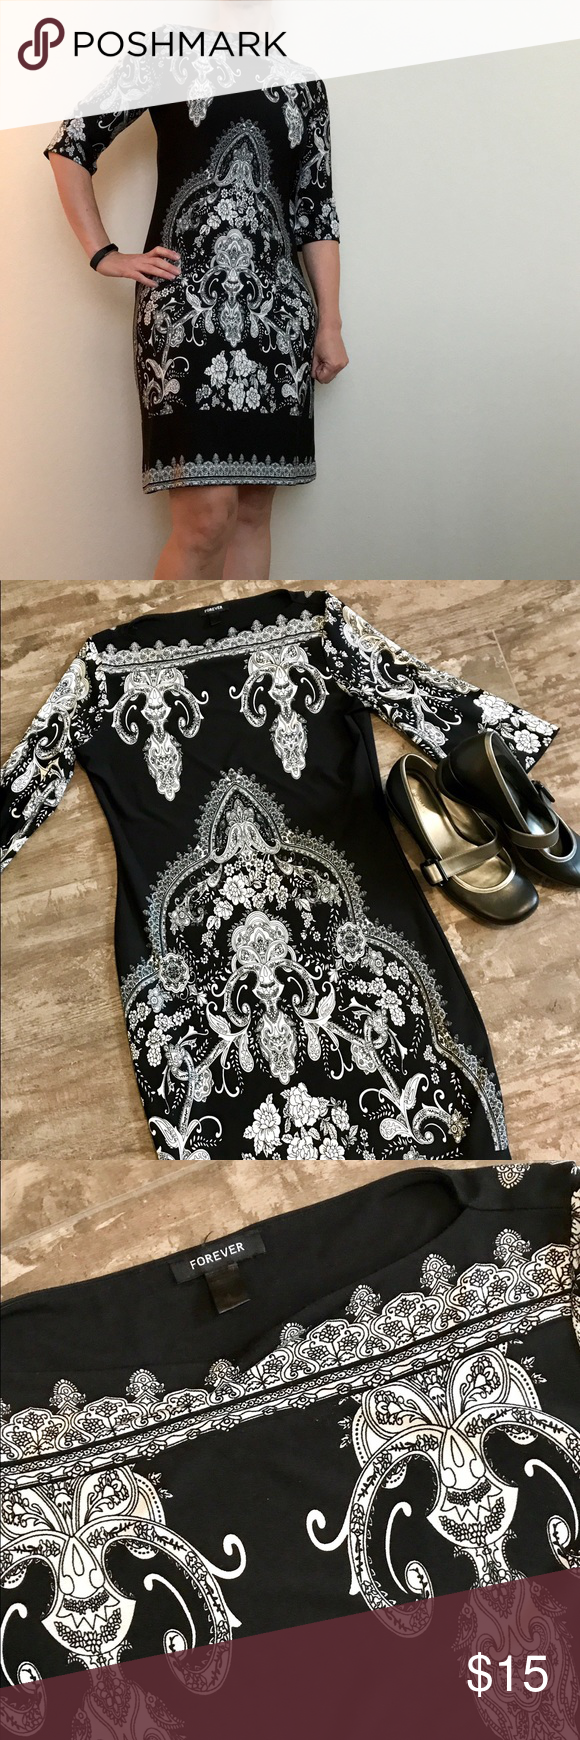 black and white shift dress Nice used dress.  Super comfortable and versatile.  Great fabric that doesn't wrinkle and packs small so easy to travel with.  Non smoking home. Dresses Midi